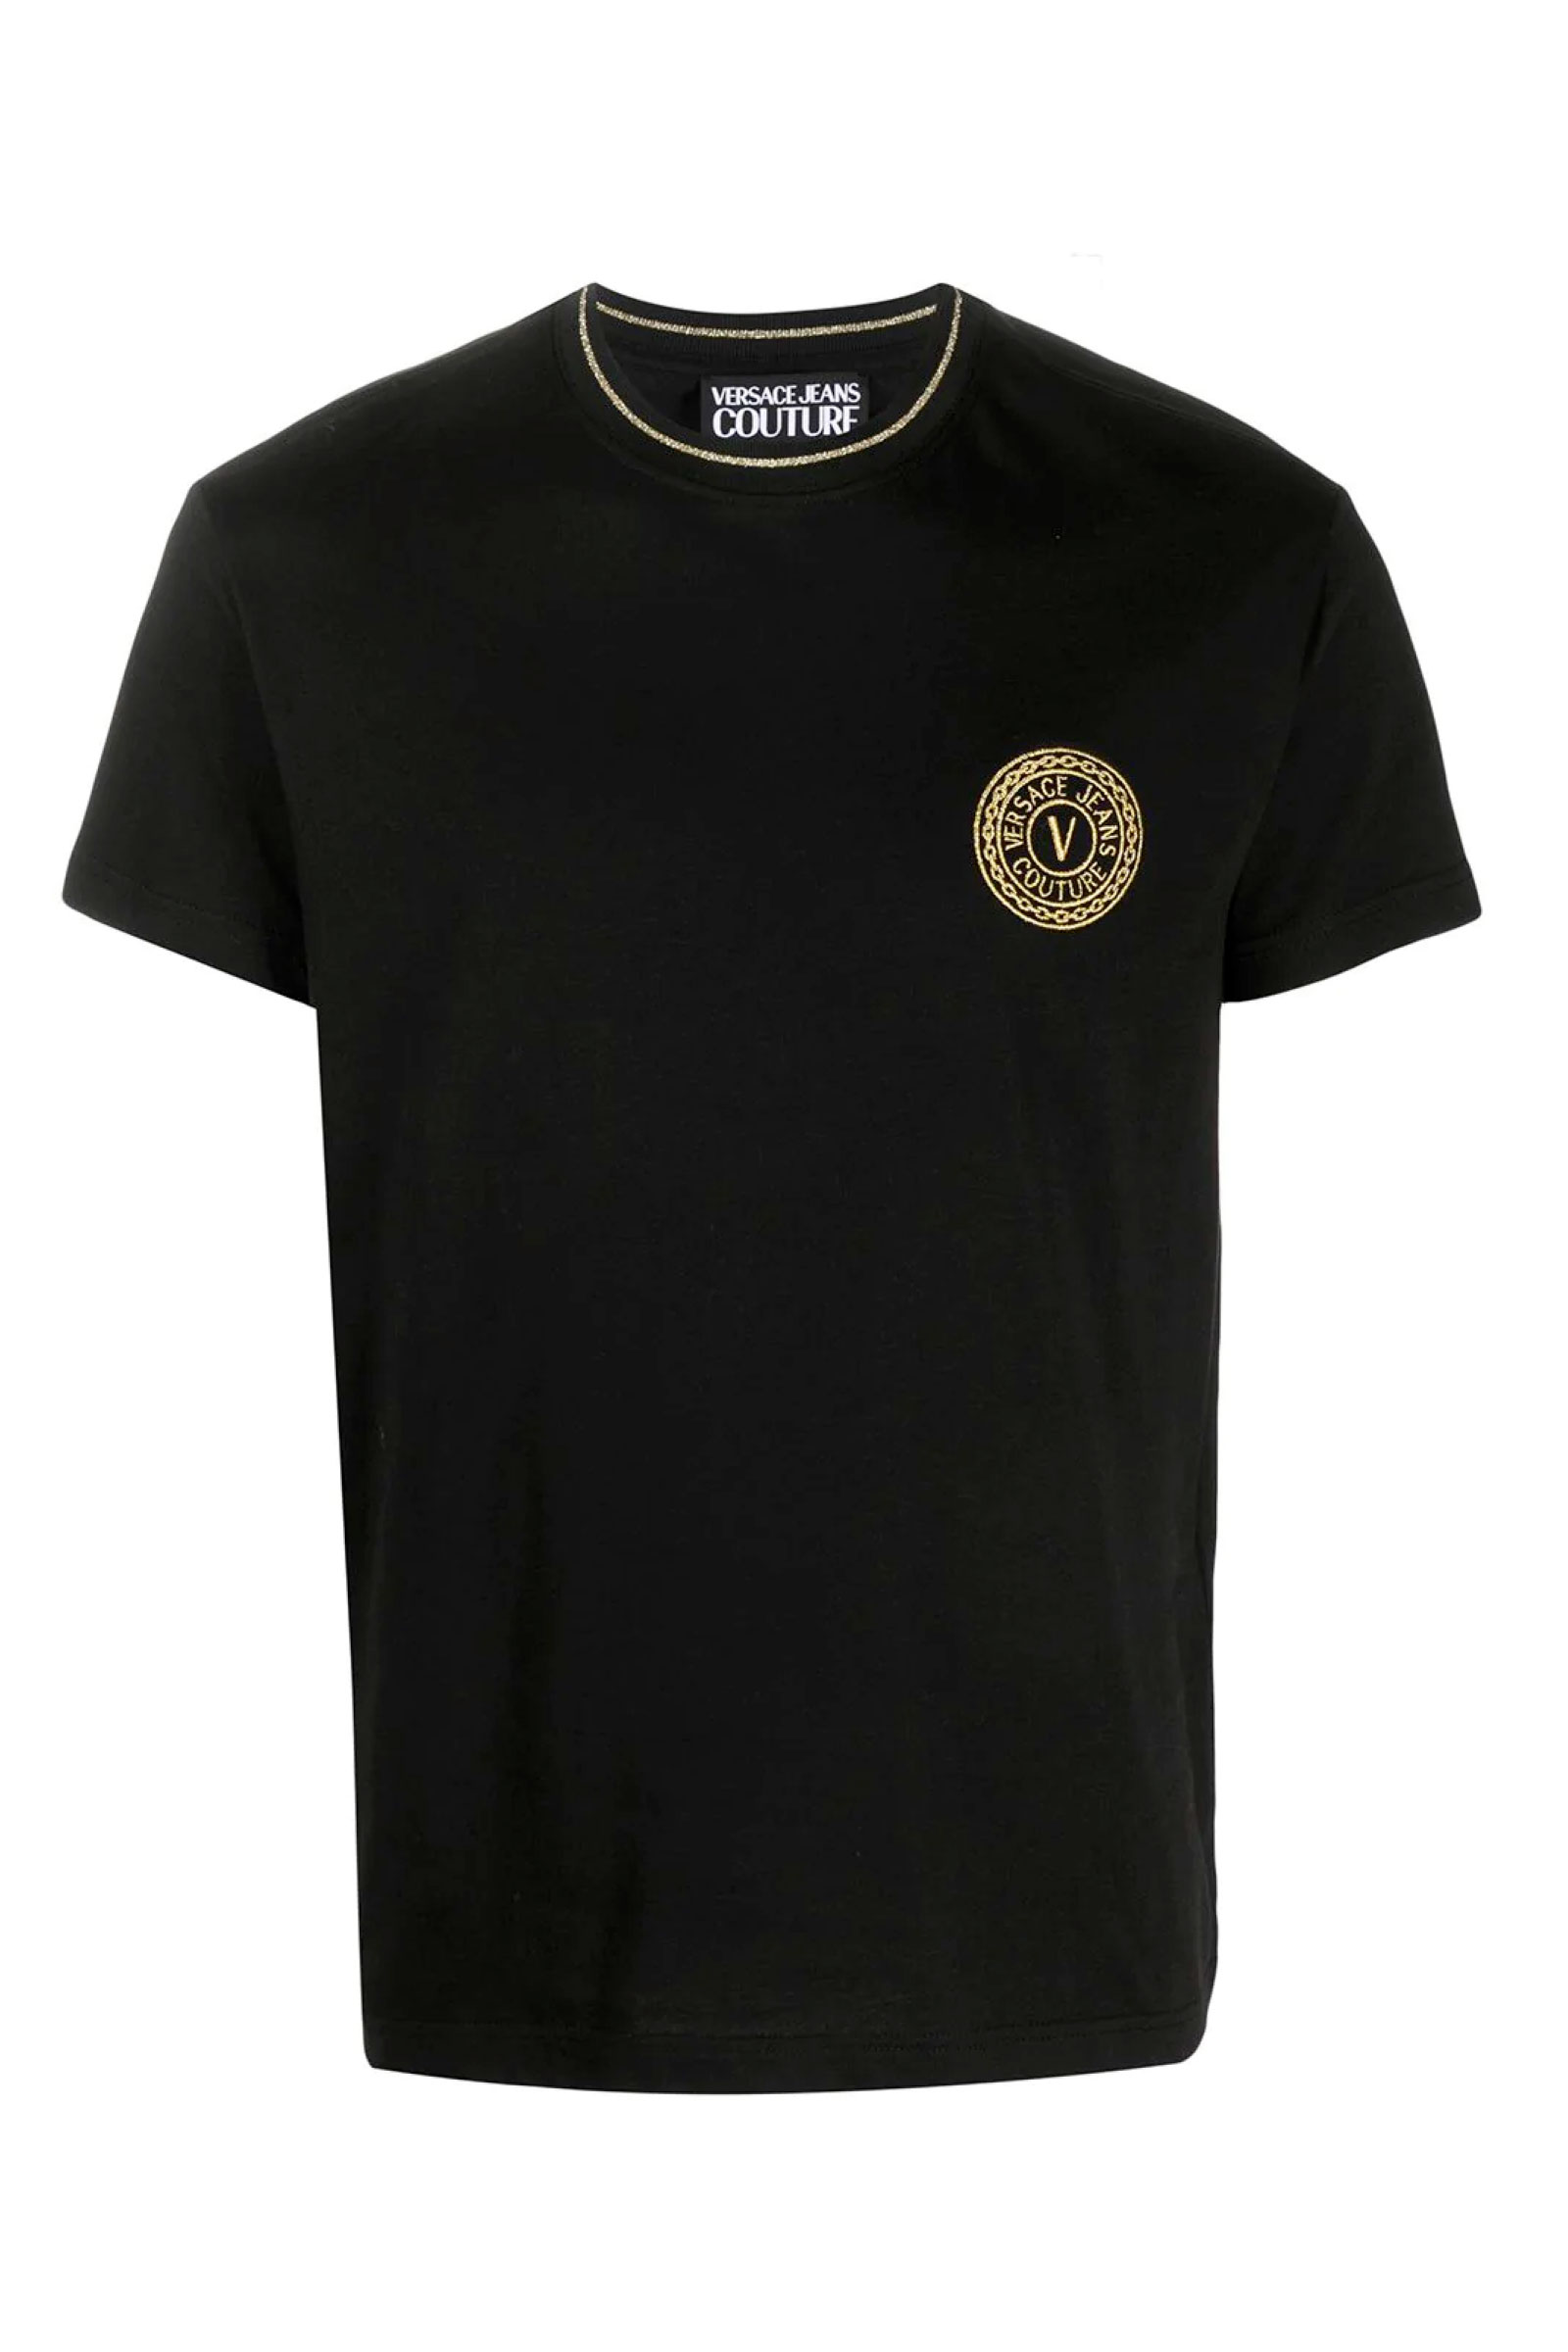 VERSACE JEANS COUTURE T-Shirt Uomo VERSACE JEANS COUTURE   T-Shirt   B3GWA7TF30319K42